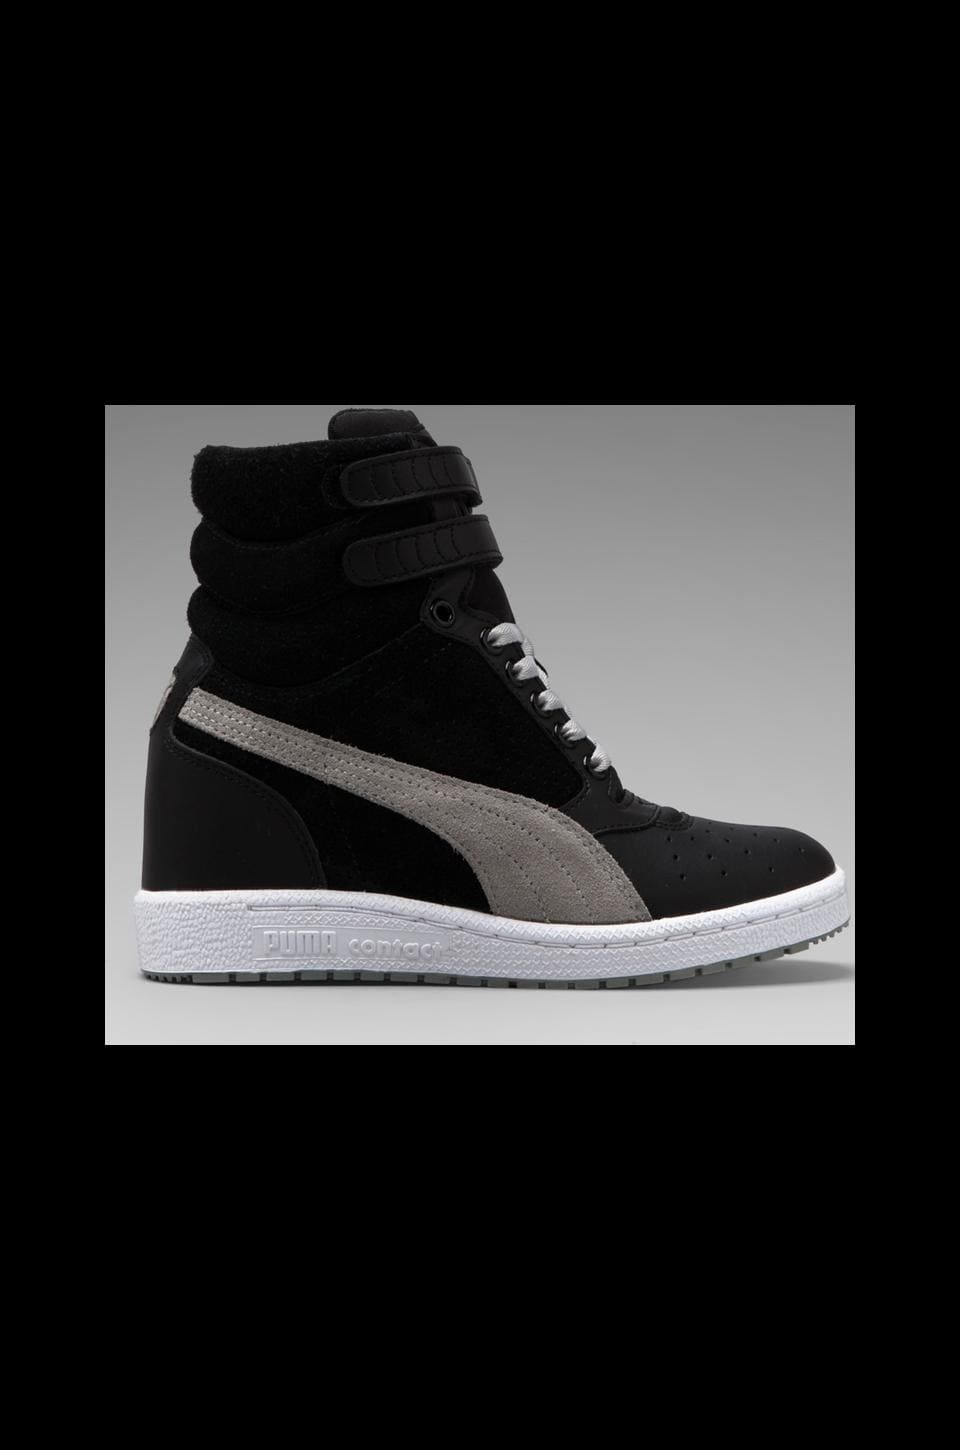 Puma by Mihara Sky Wedge in Black/Limestone Grey